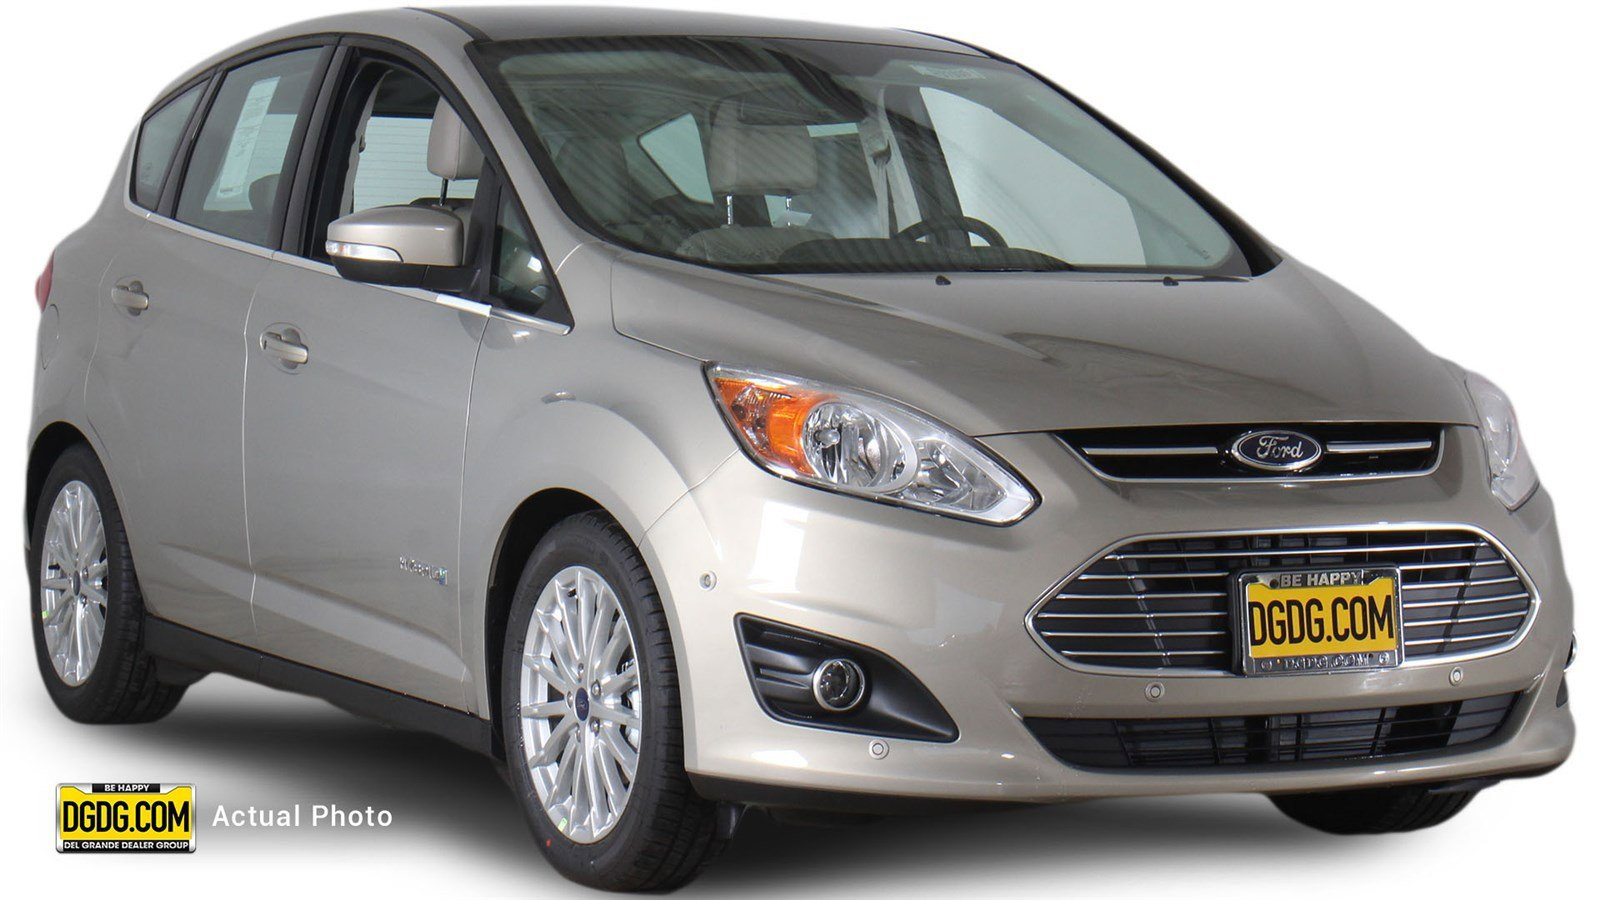 New Ford C-Max Hybrid SEL